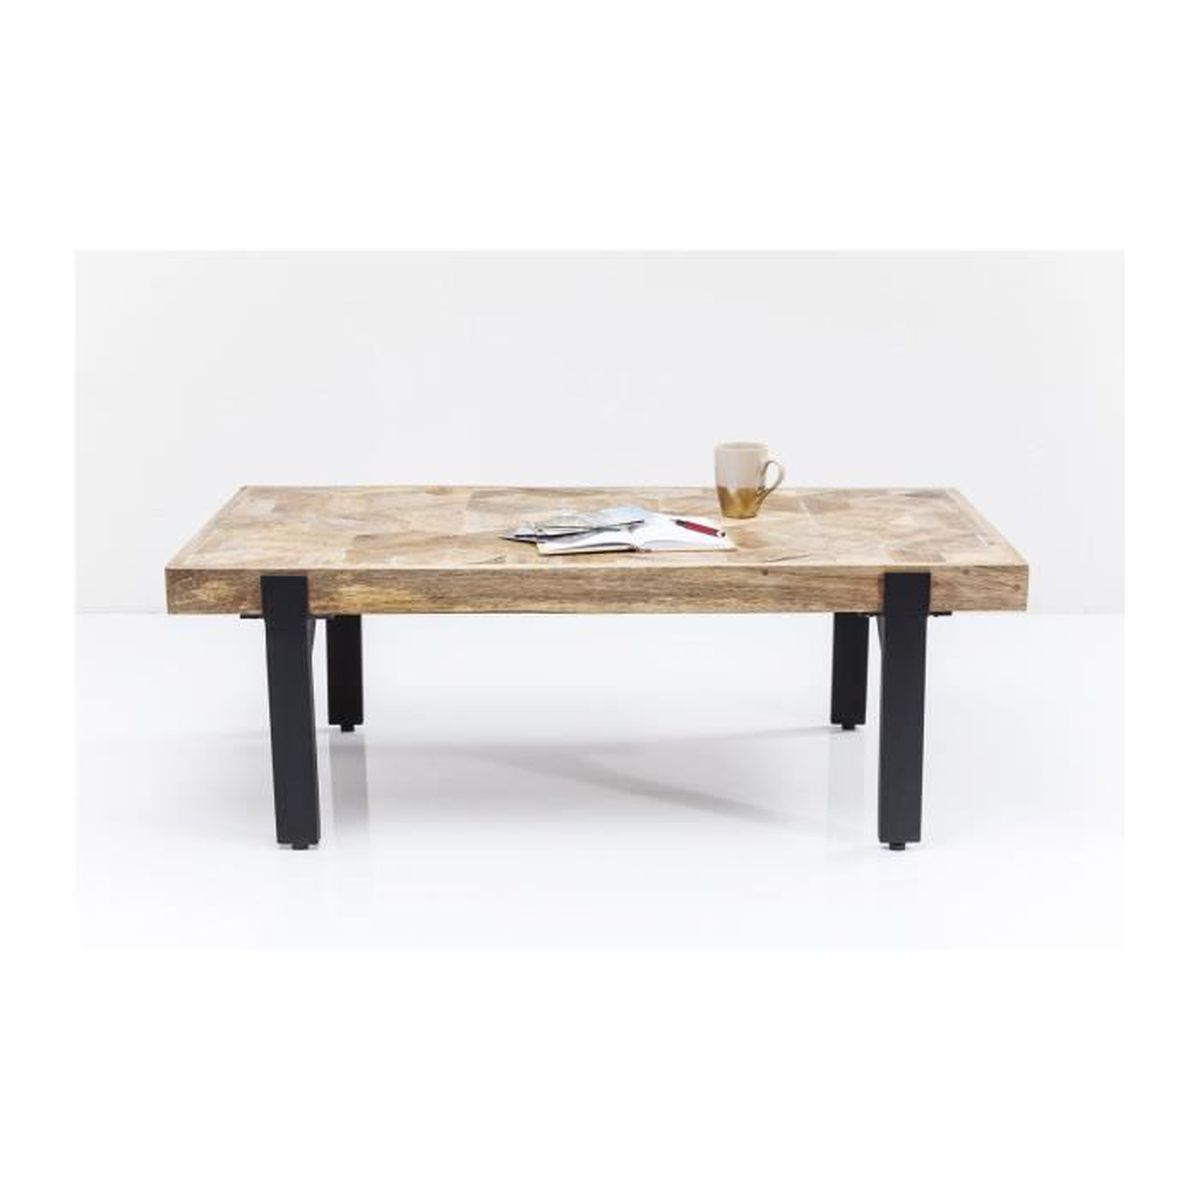 Table basse tortuga 120x60cm kare design achat vente for Table basse hauteur 60 cm